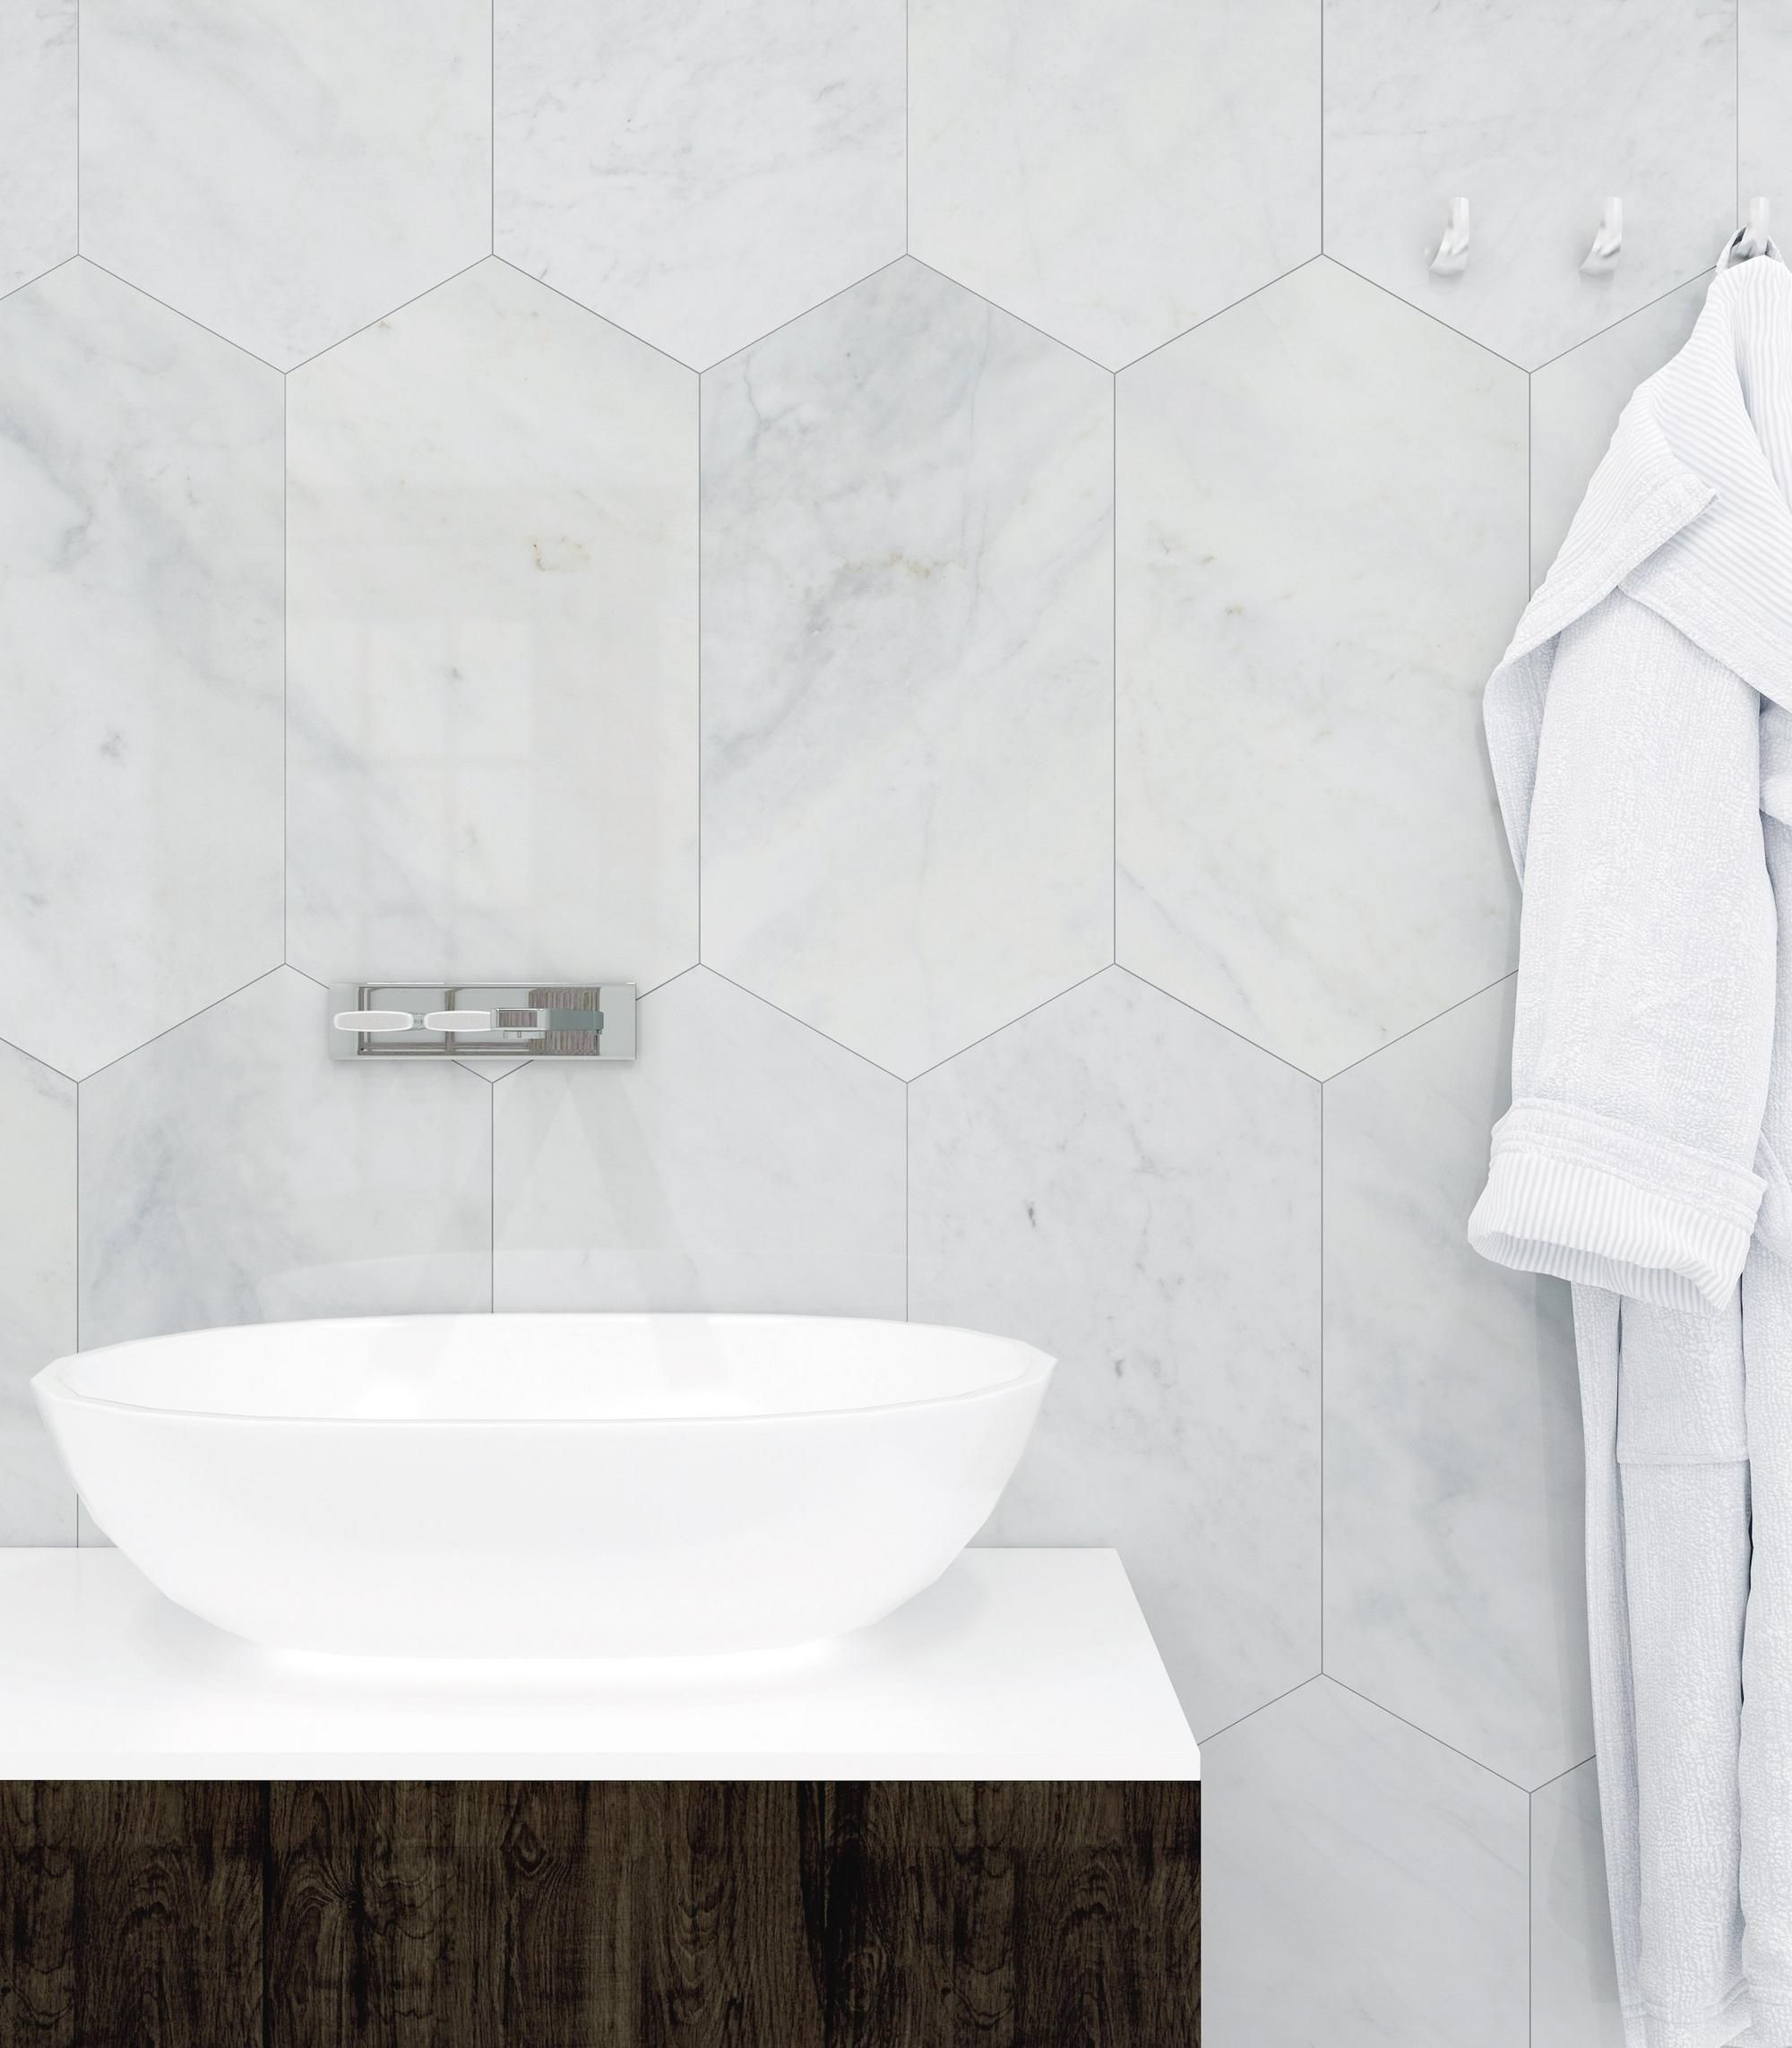 Bianco Blanco Oblong Marble Tile Marble Bathroom Bathroom Interior Design Floor Decor